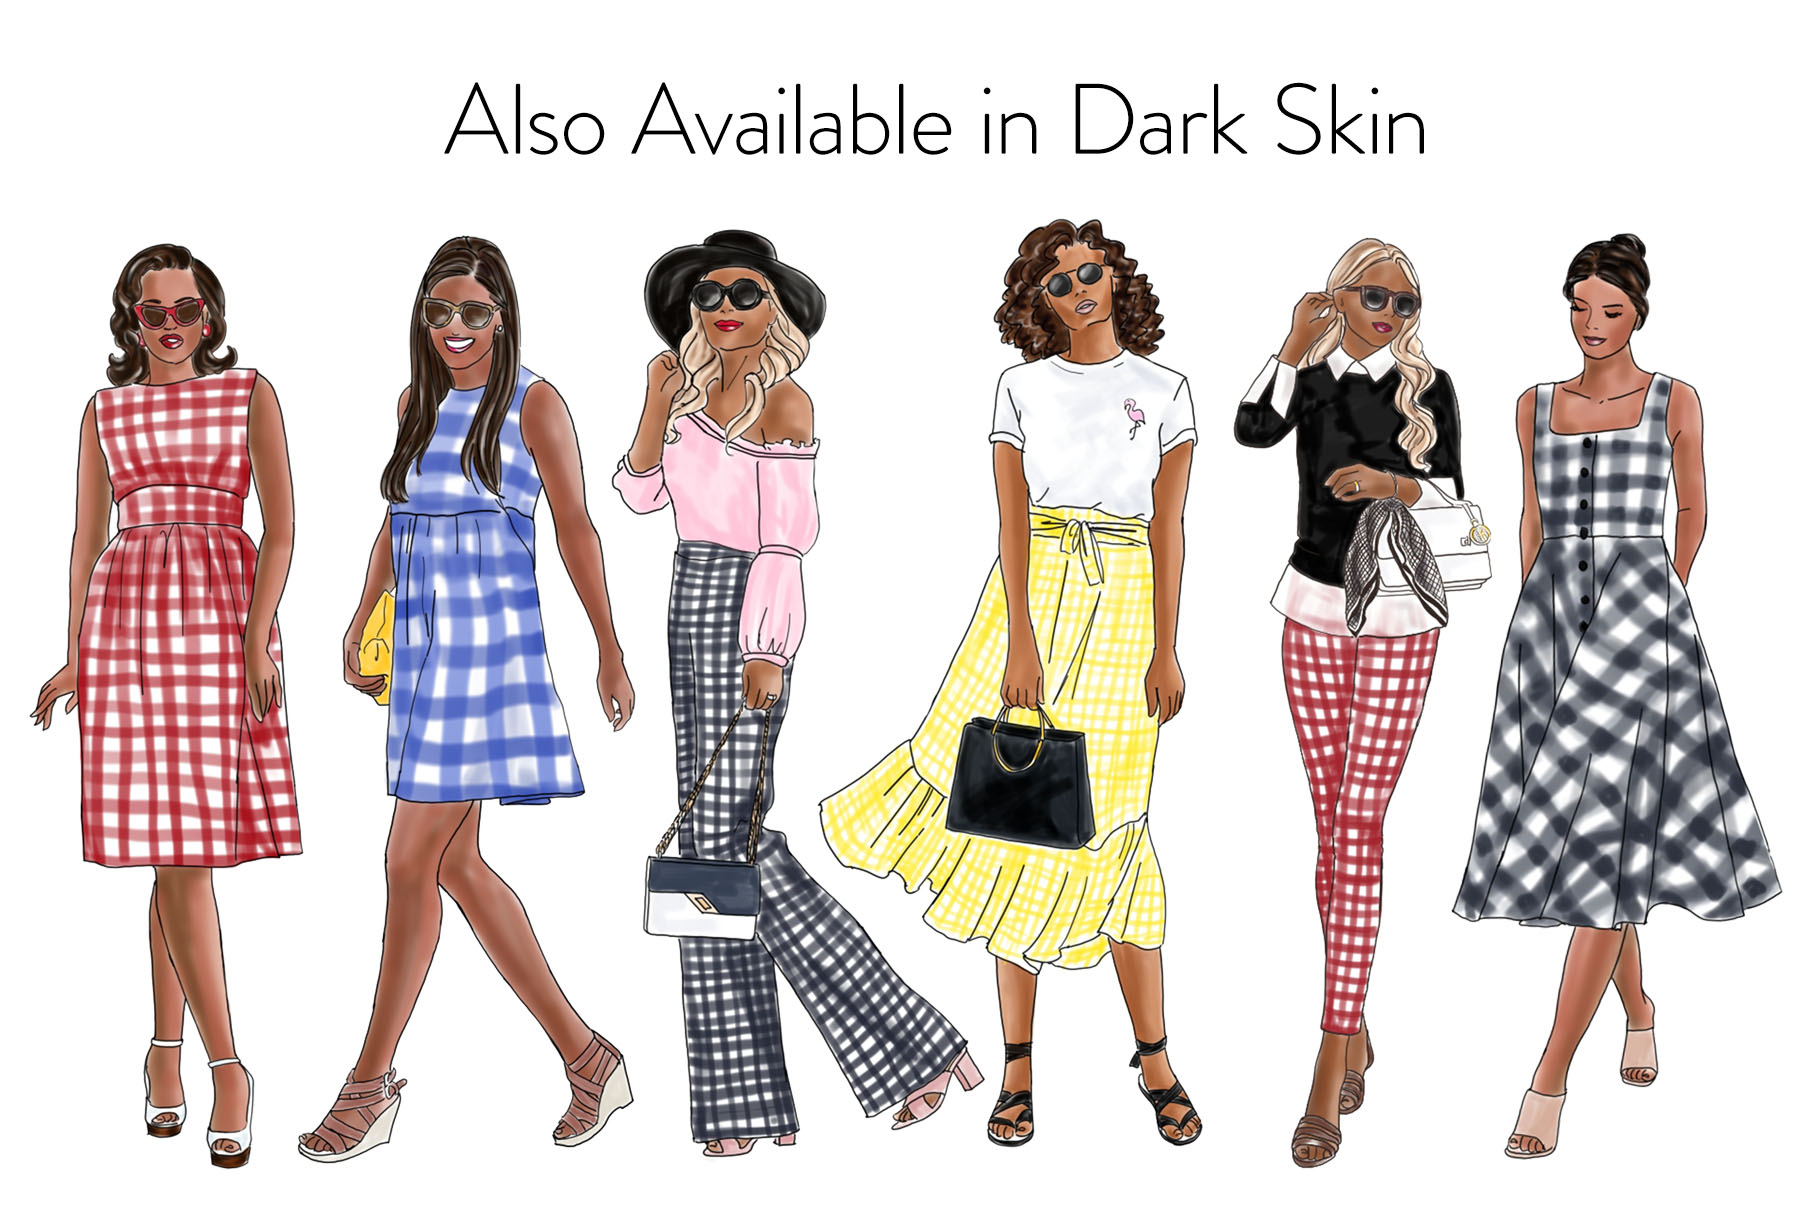 Fashion illustration clipart - Girls in Gingham - Light Skin example image 4